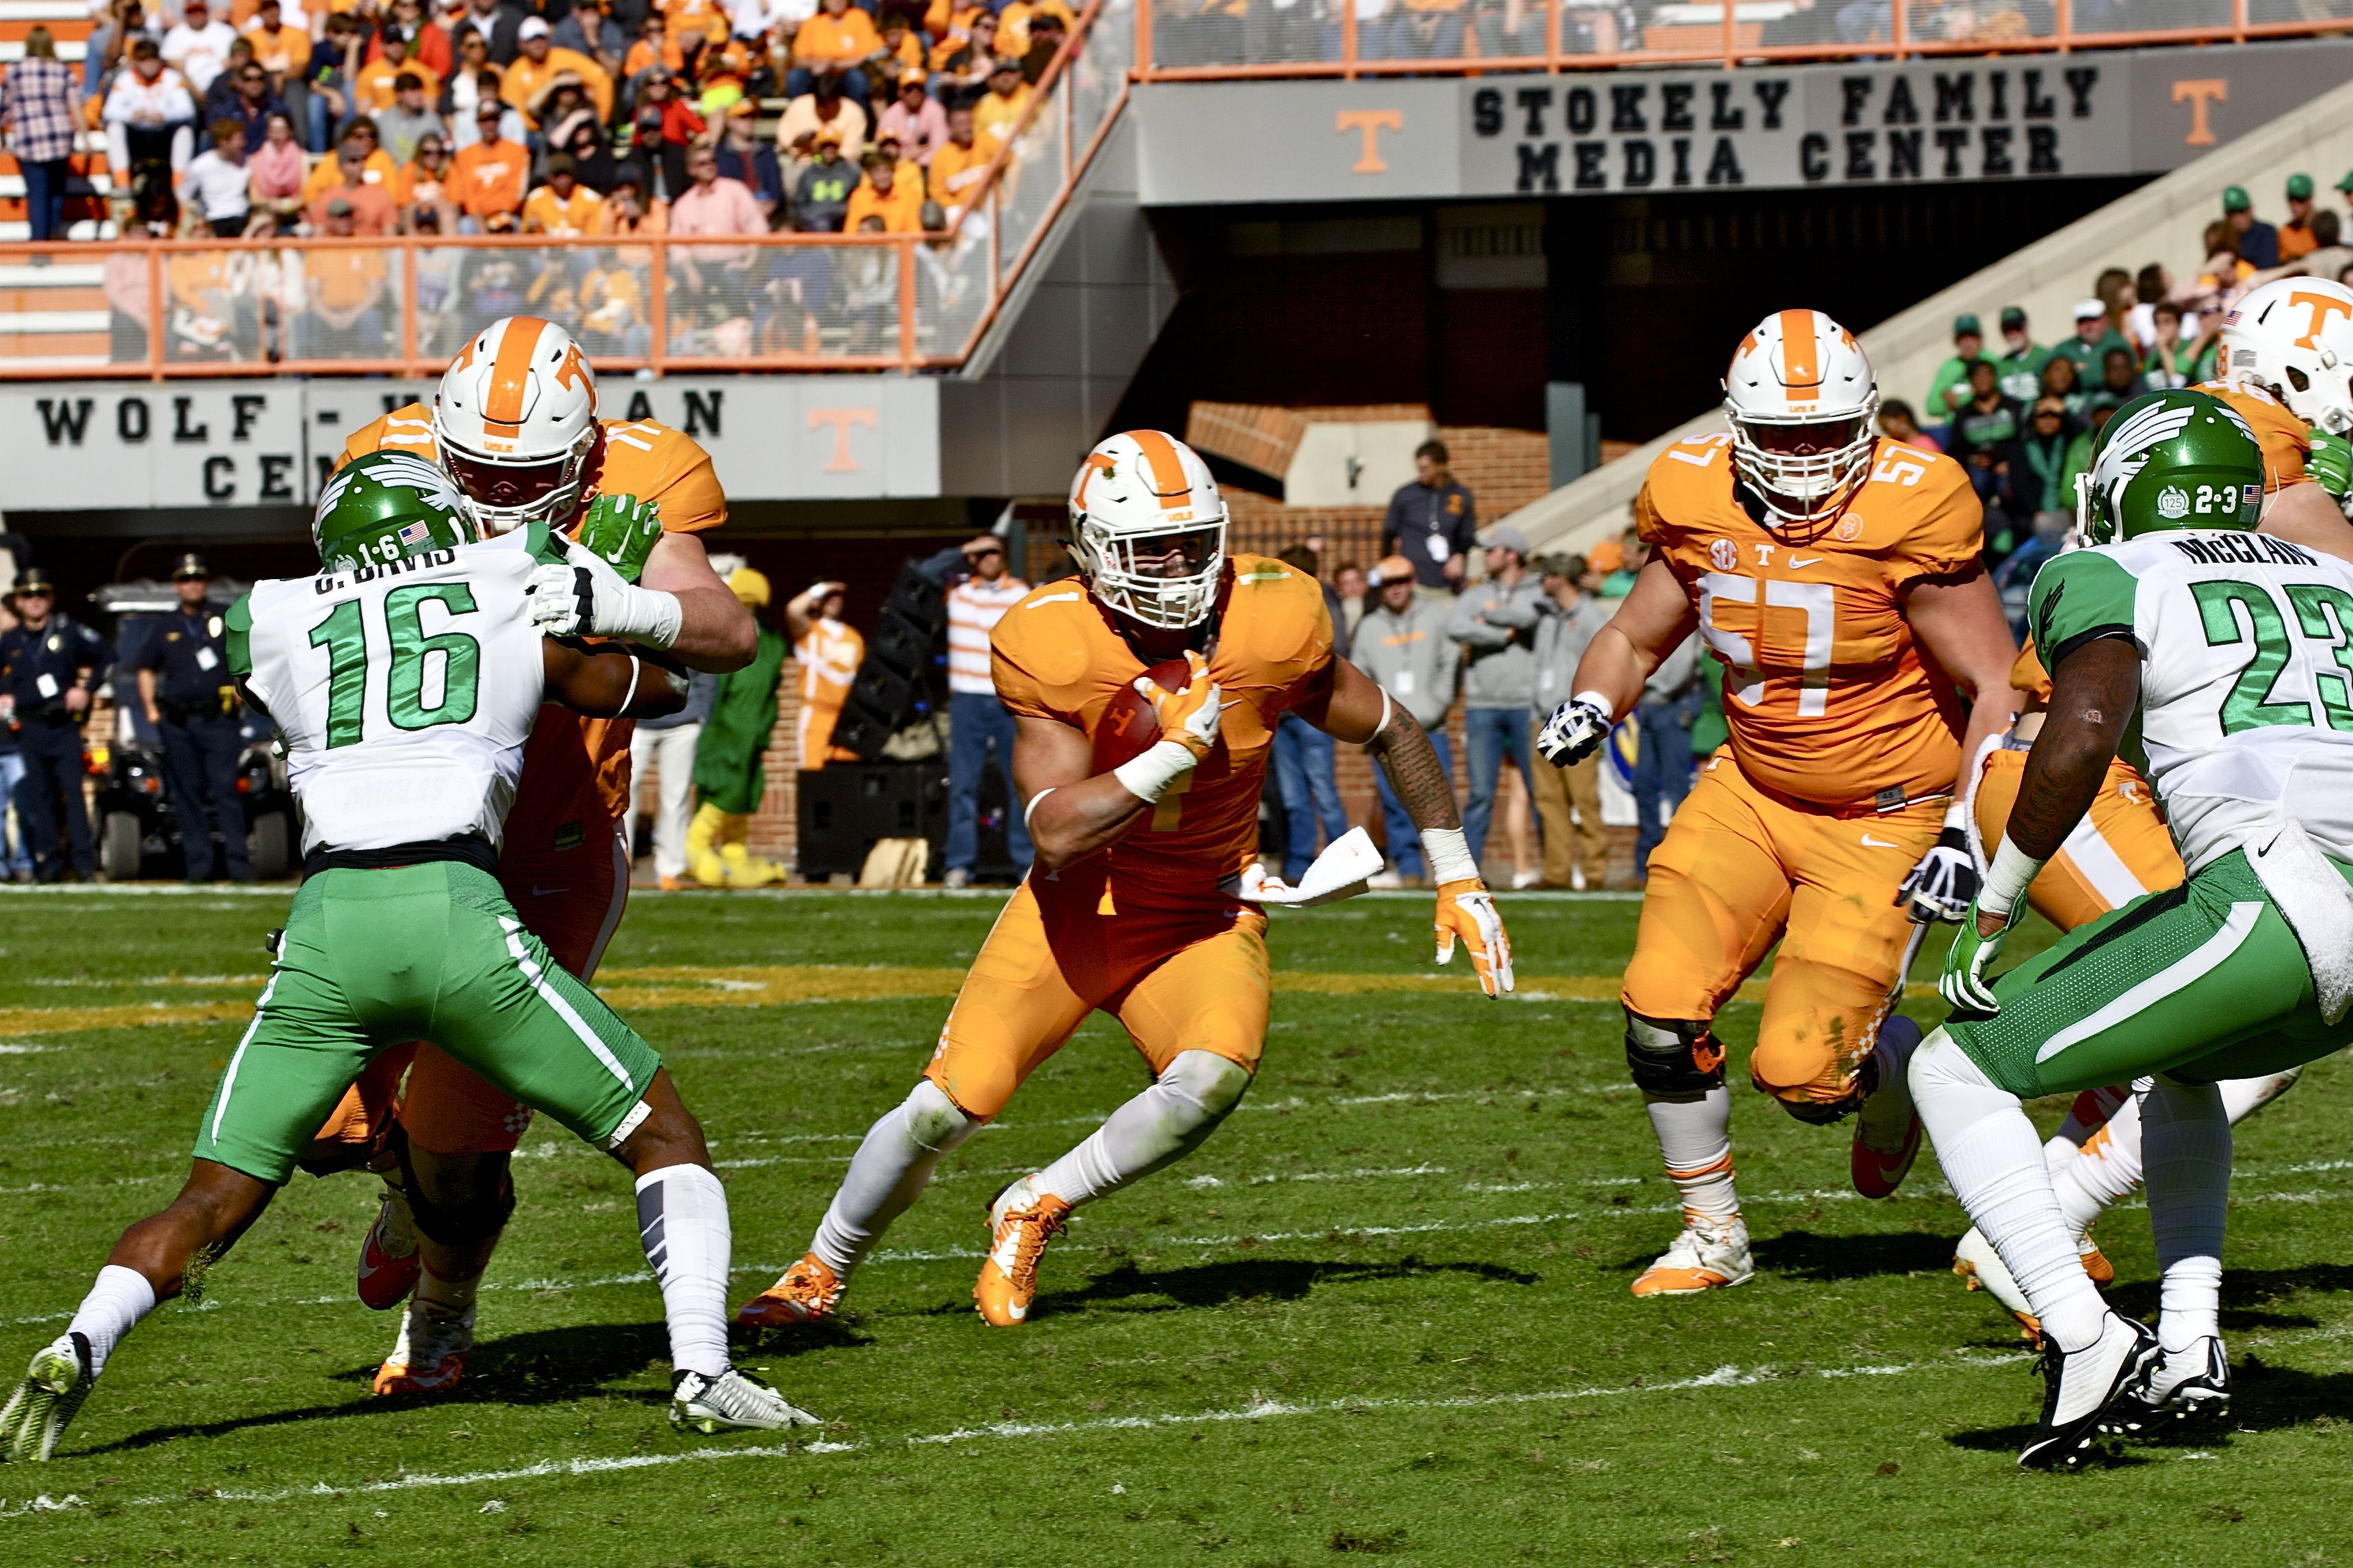 Photo Gallery: Tennessee vs. North Texas Football Action 11-14-15